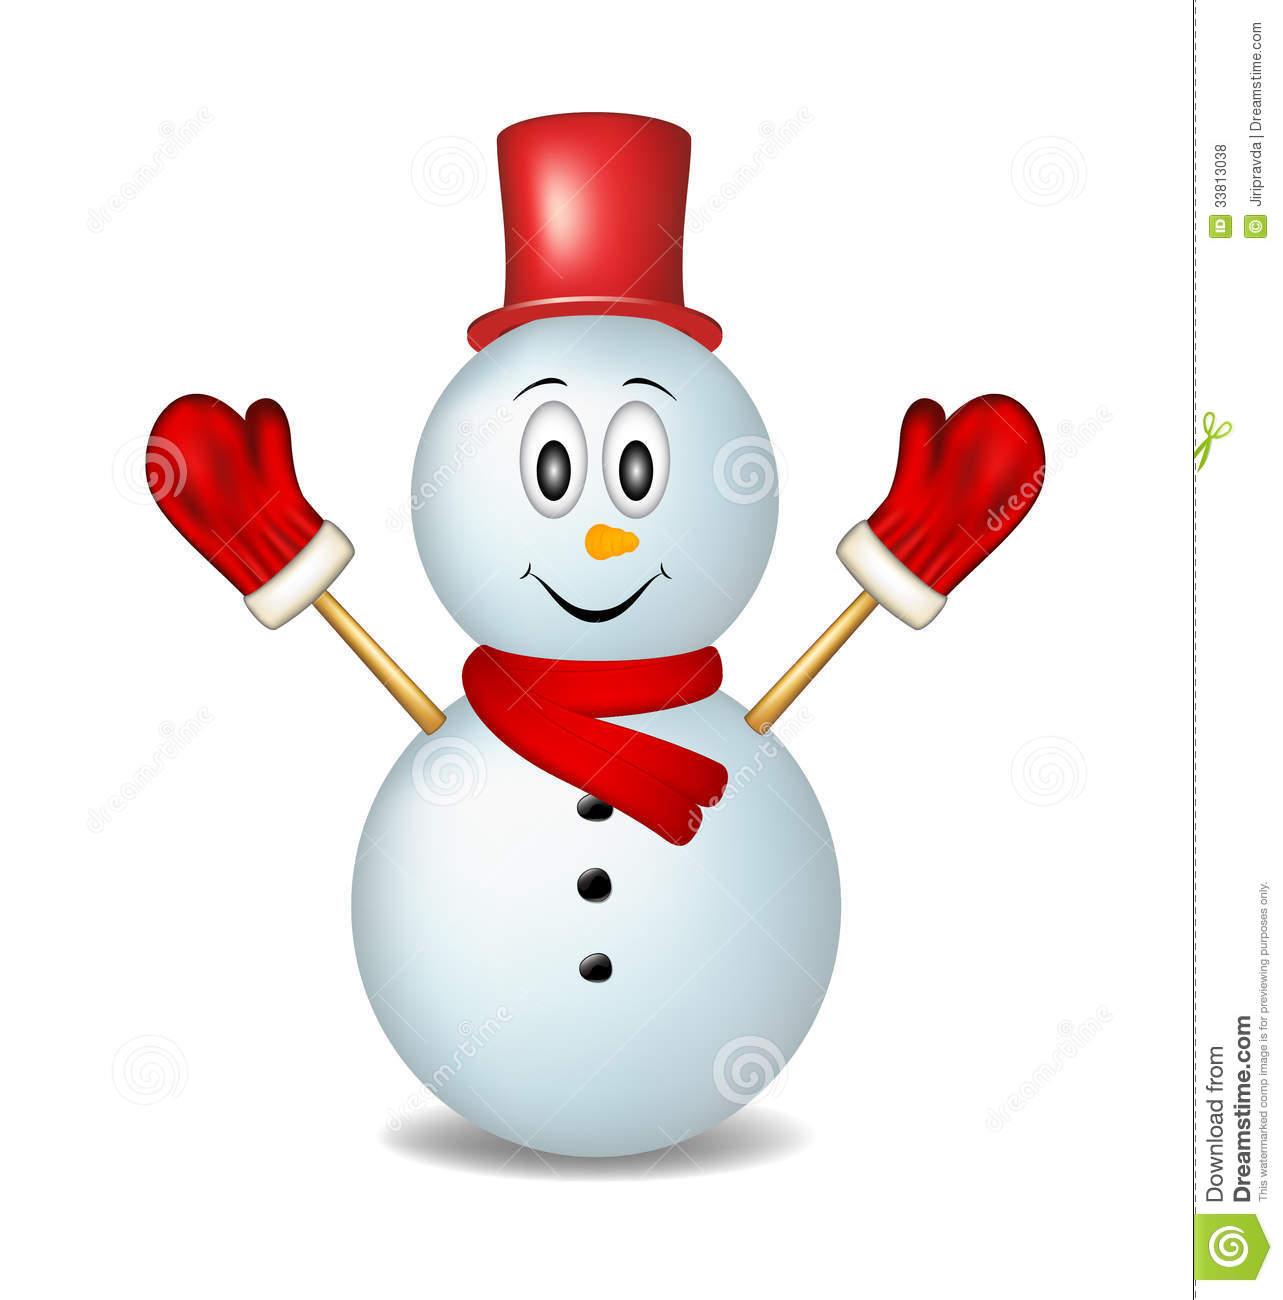 Smiling Snowman Wearing Mittens, Hat And Scarf Royalty Free Stock ...